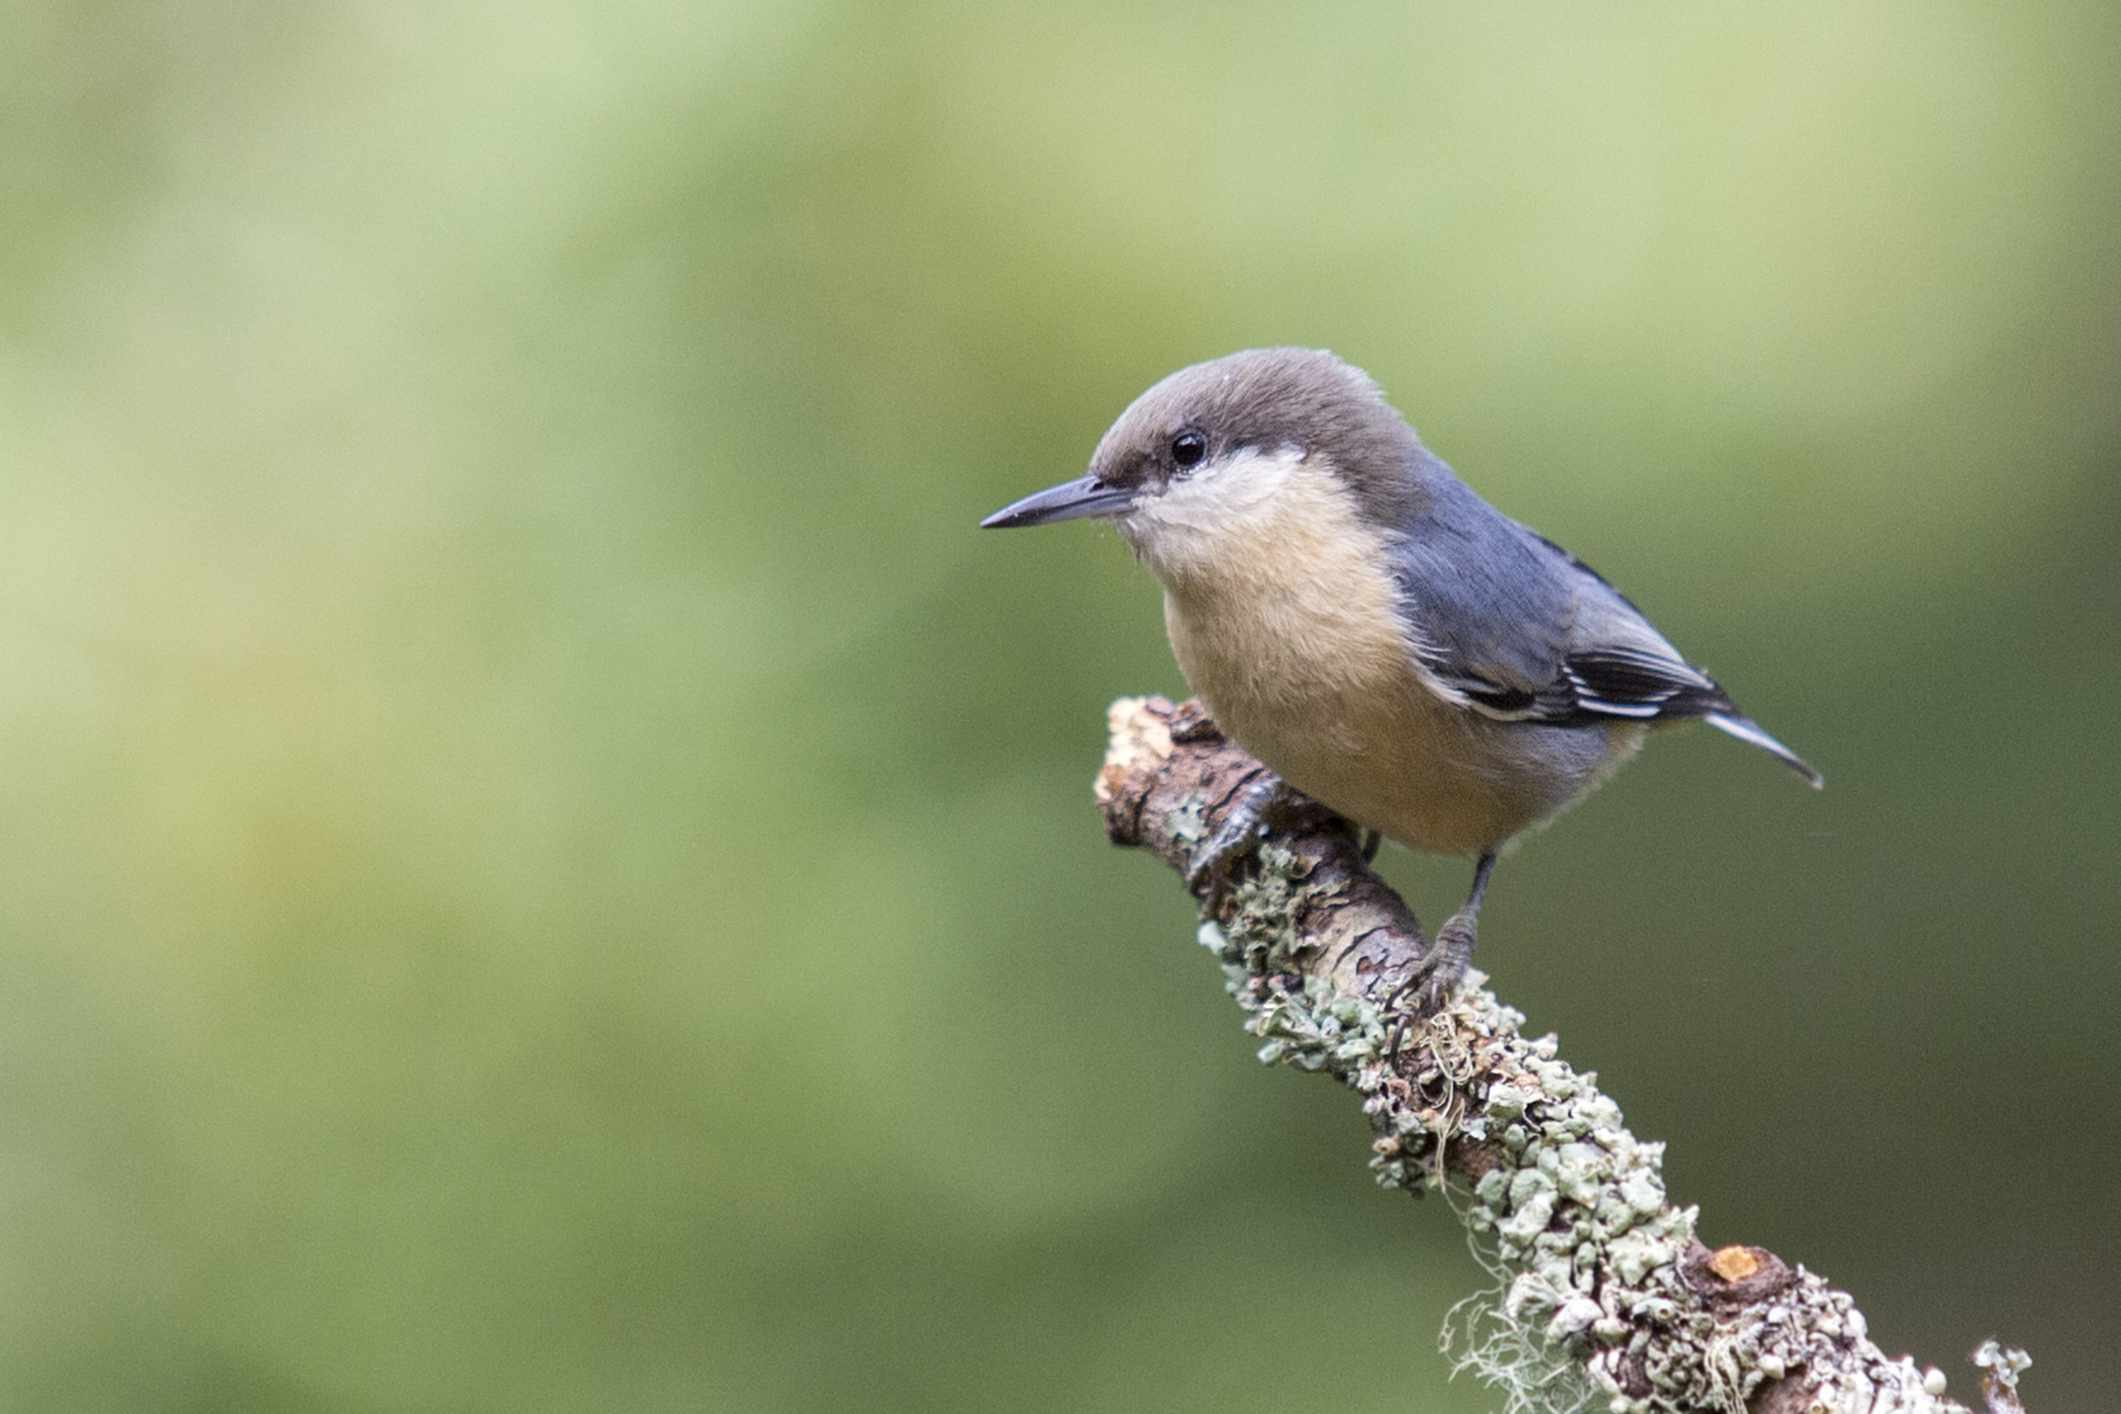 brown and white pygmy nuthatch on branch with green background